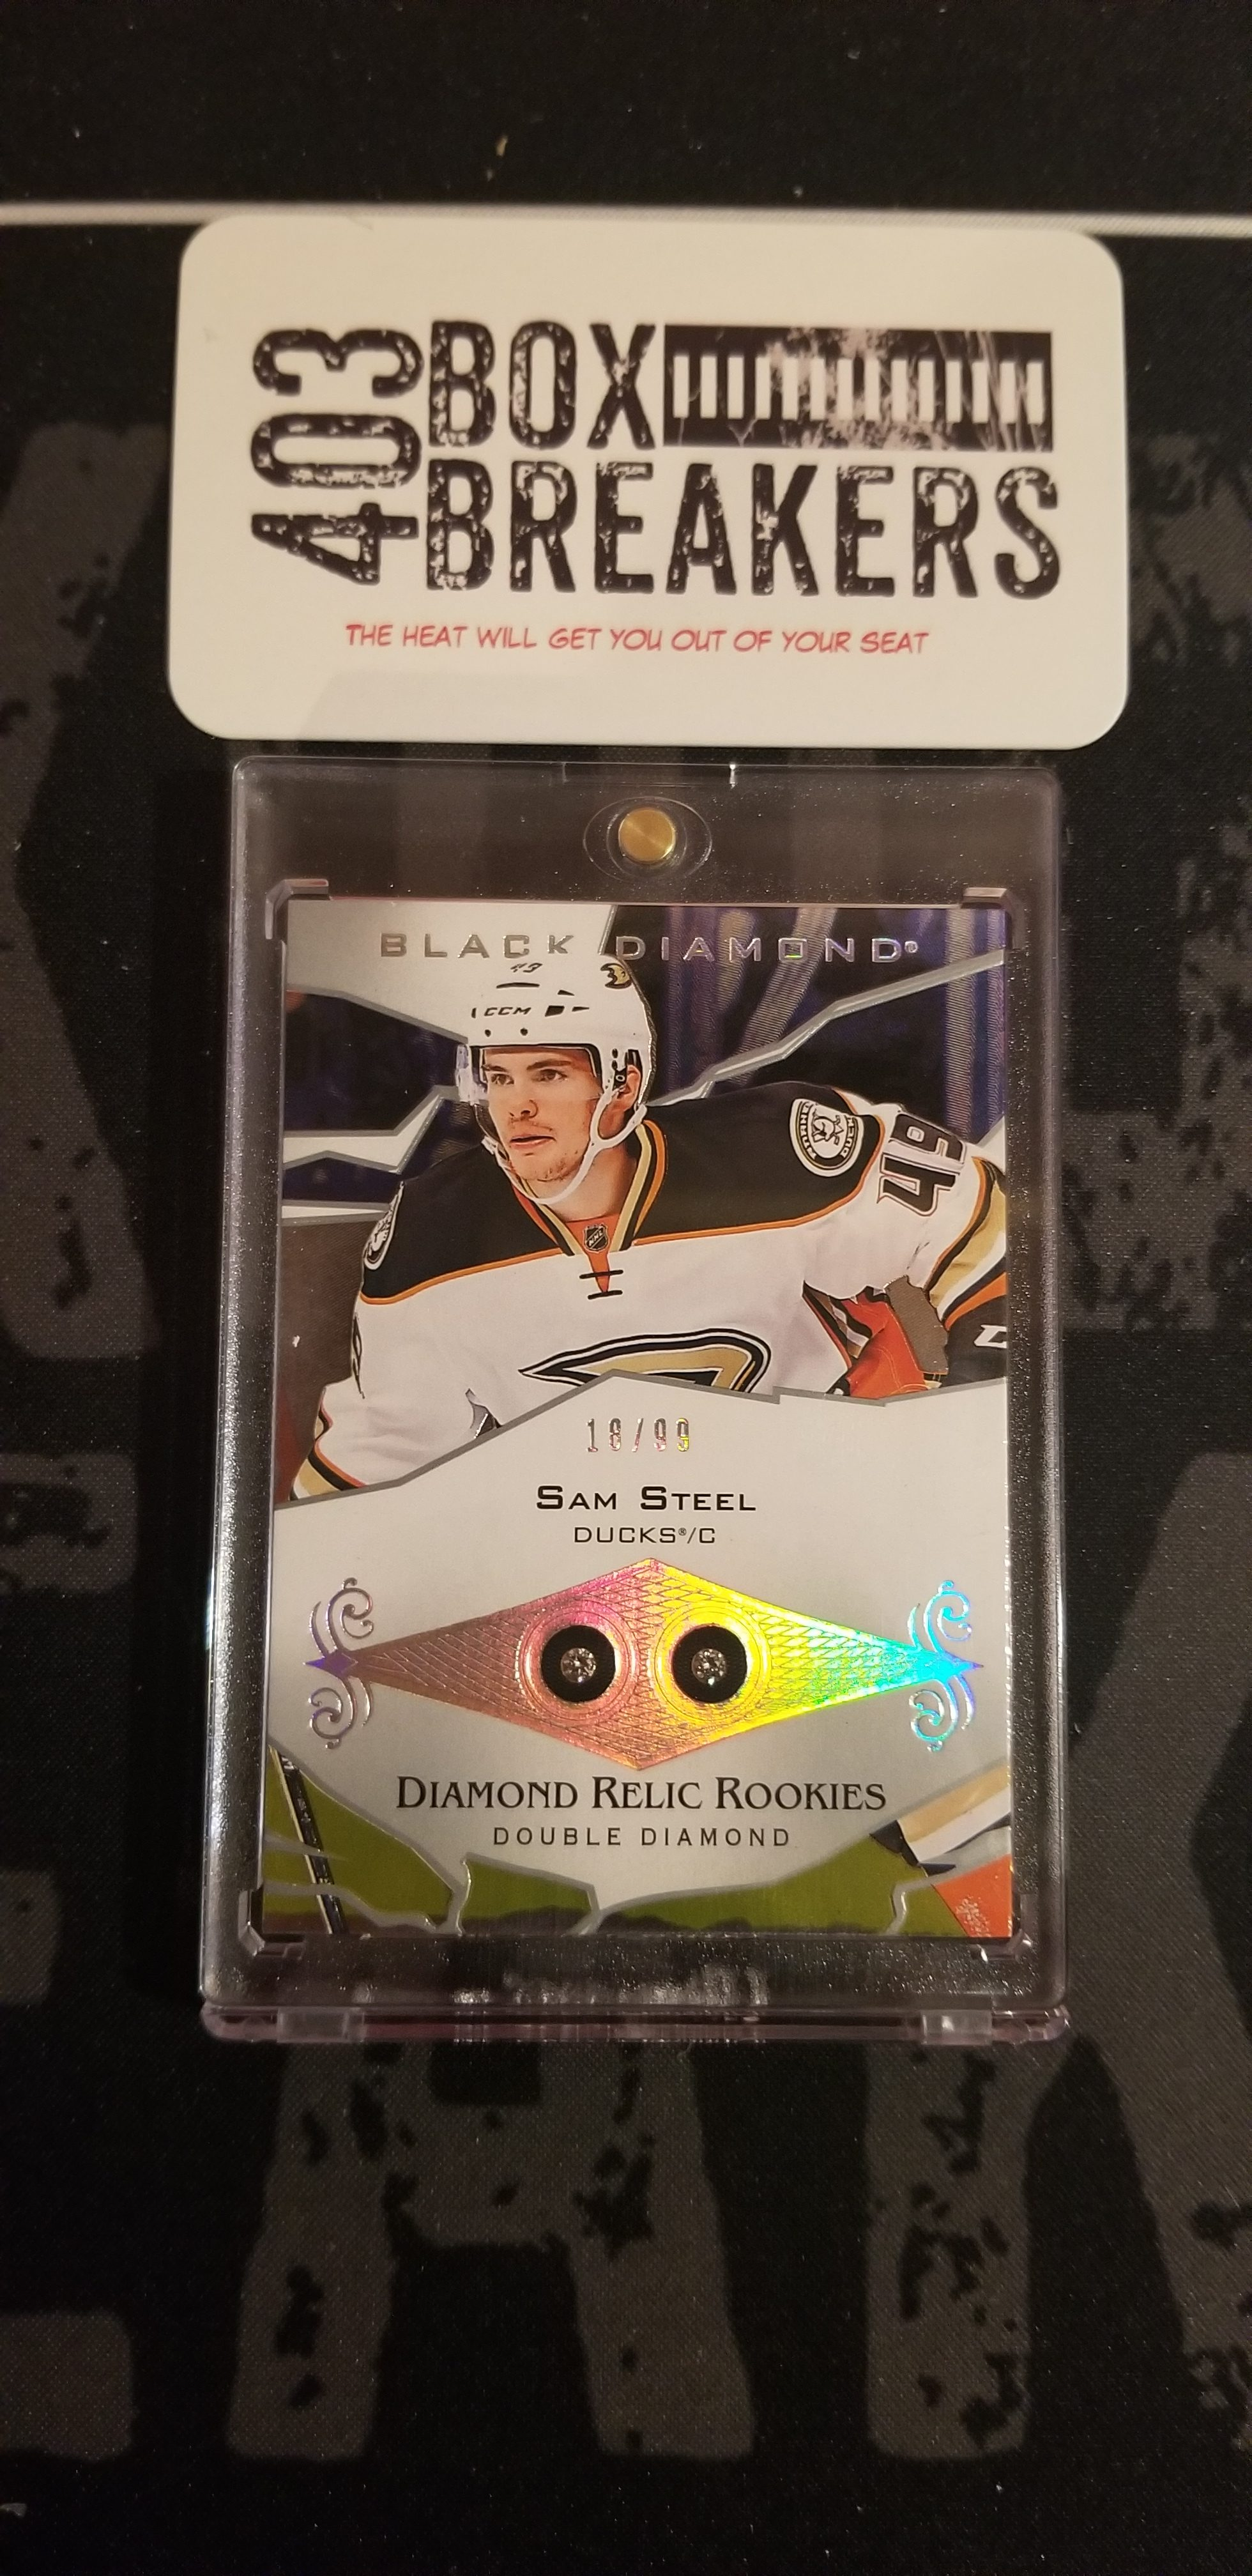 18/19 Upper Deck Black Diamond Master – July 31, 2019